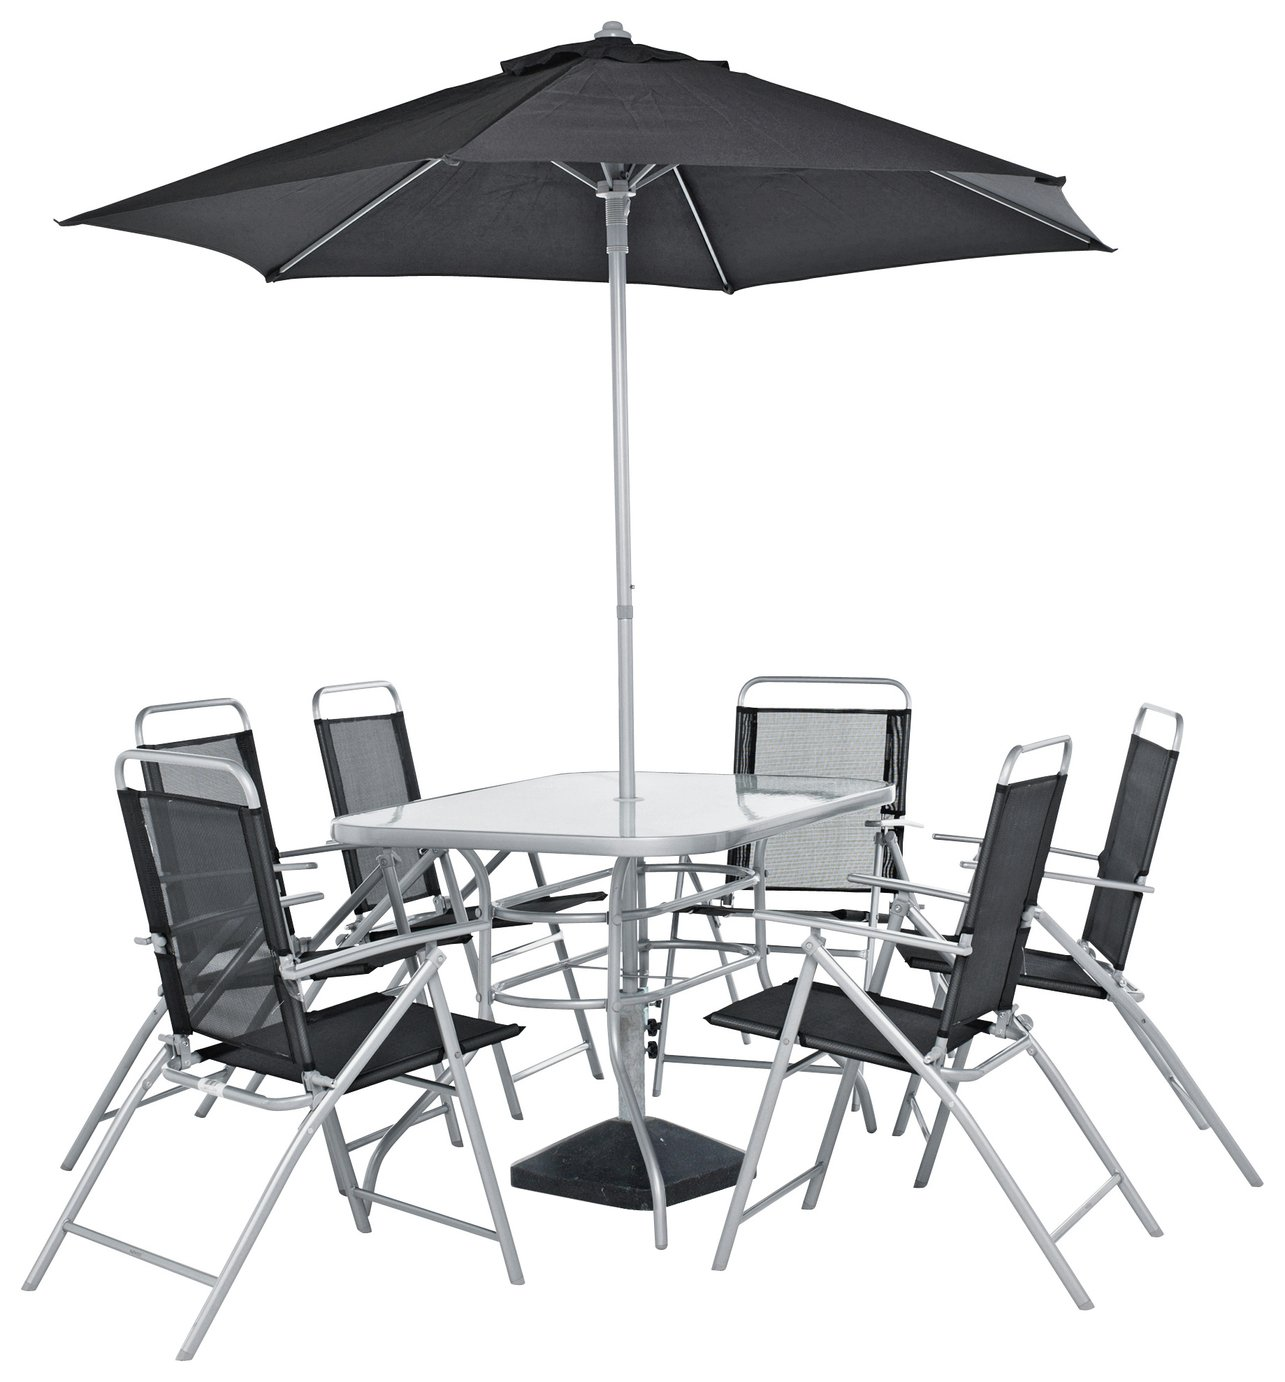 Garden Furniture 6 Seater buy home pacific 6 seater patio furniture set at argos.co.uk